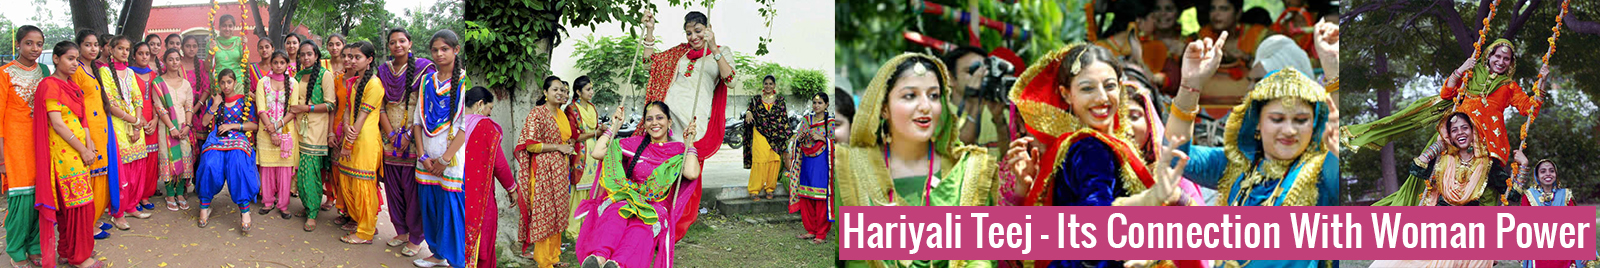 Hariyali Teej and Women